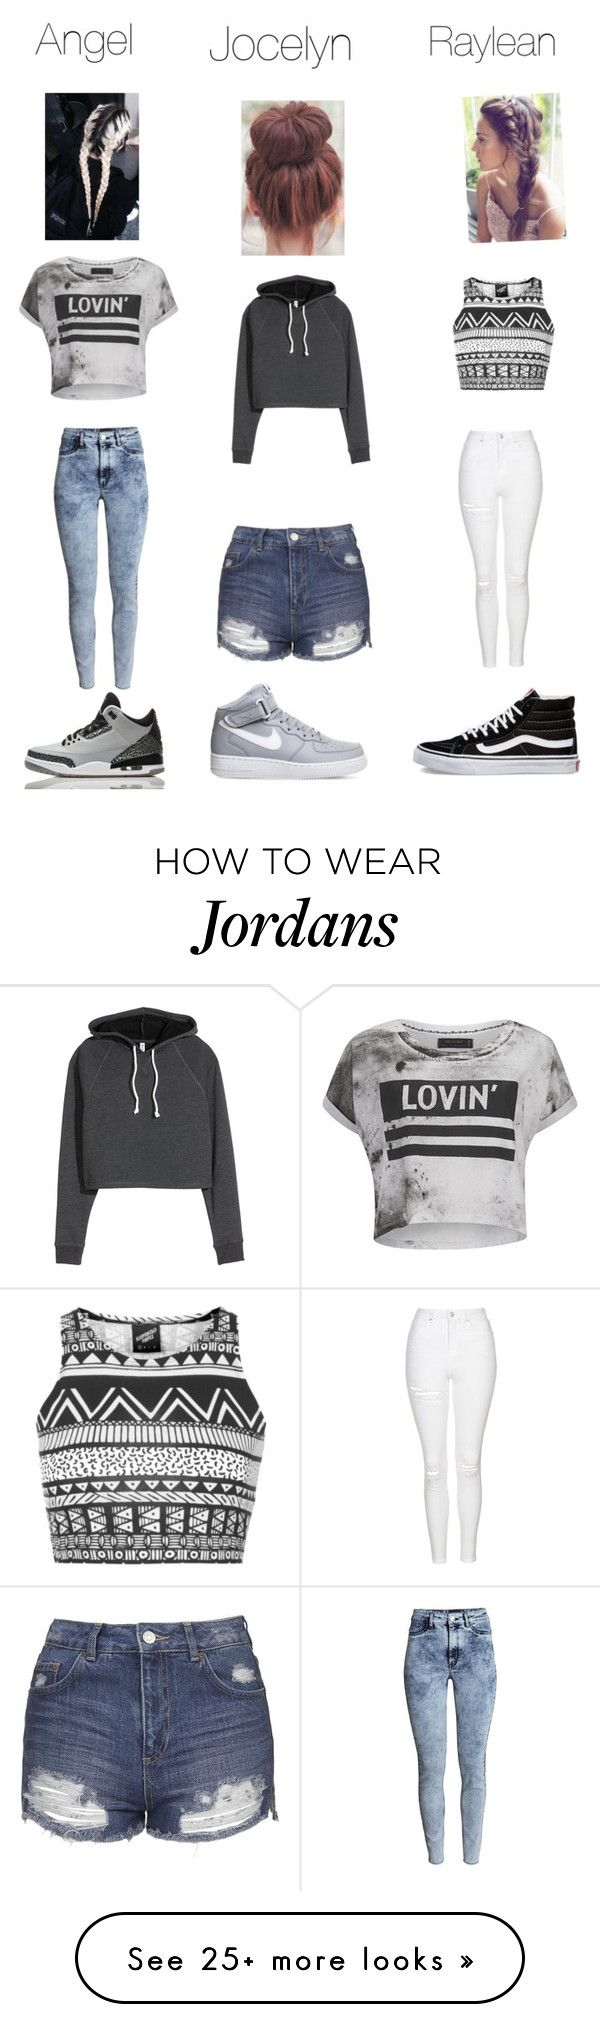 c40f0f8ed2c Friends by baseballgirl109 on Polyvore featuring Illustrated People,  Topshop, HM, Religion Clothing,